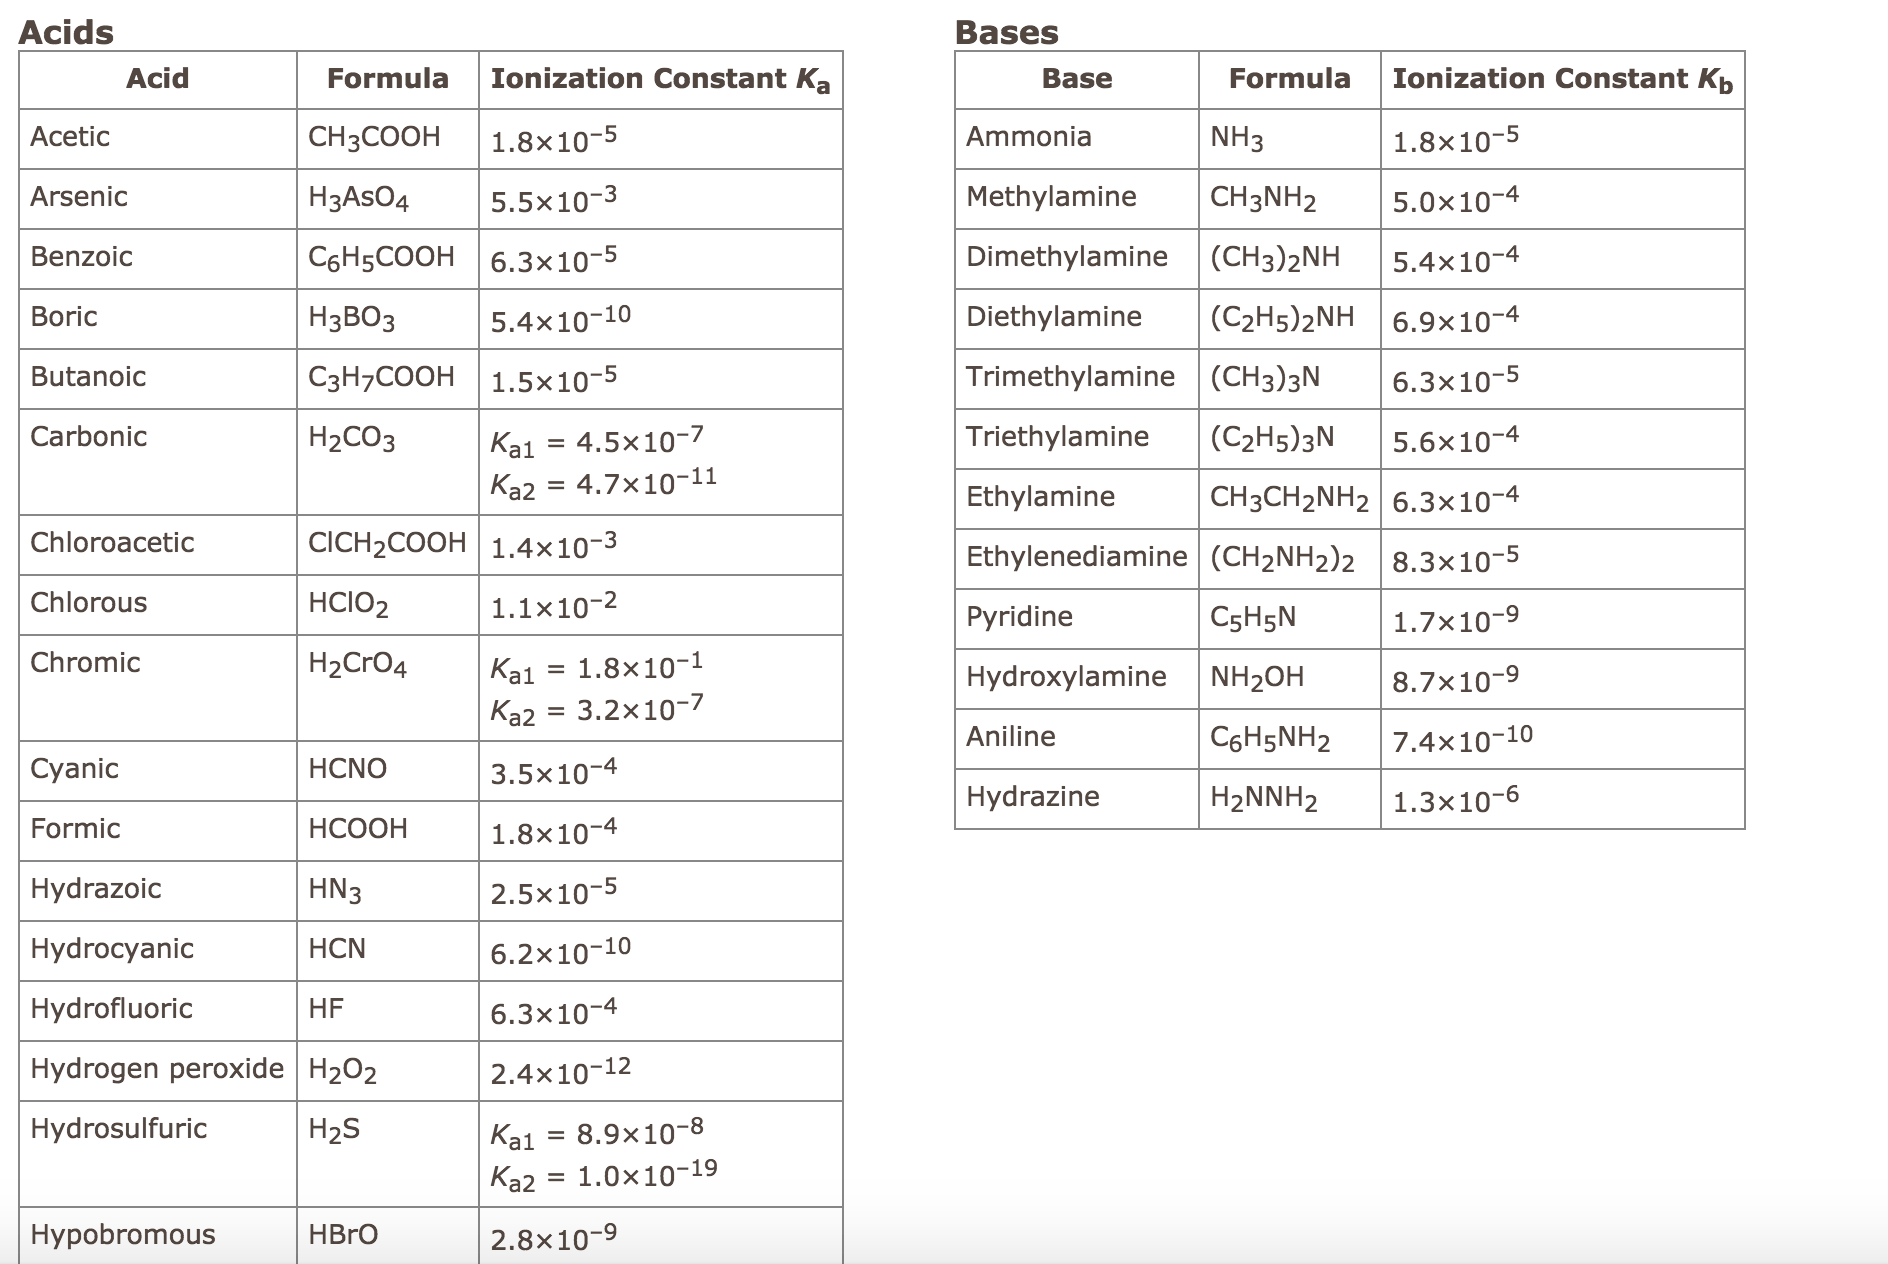 Solved Using This Table Of Ionization Constants Calculat